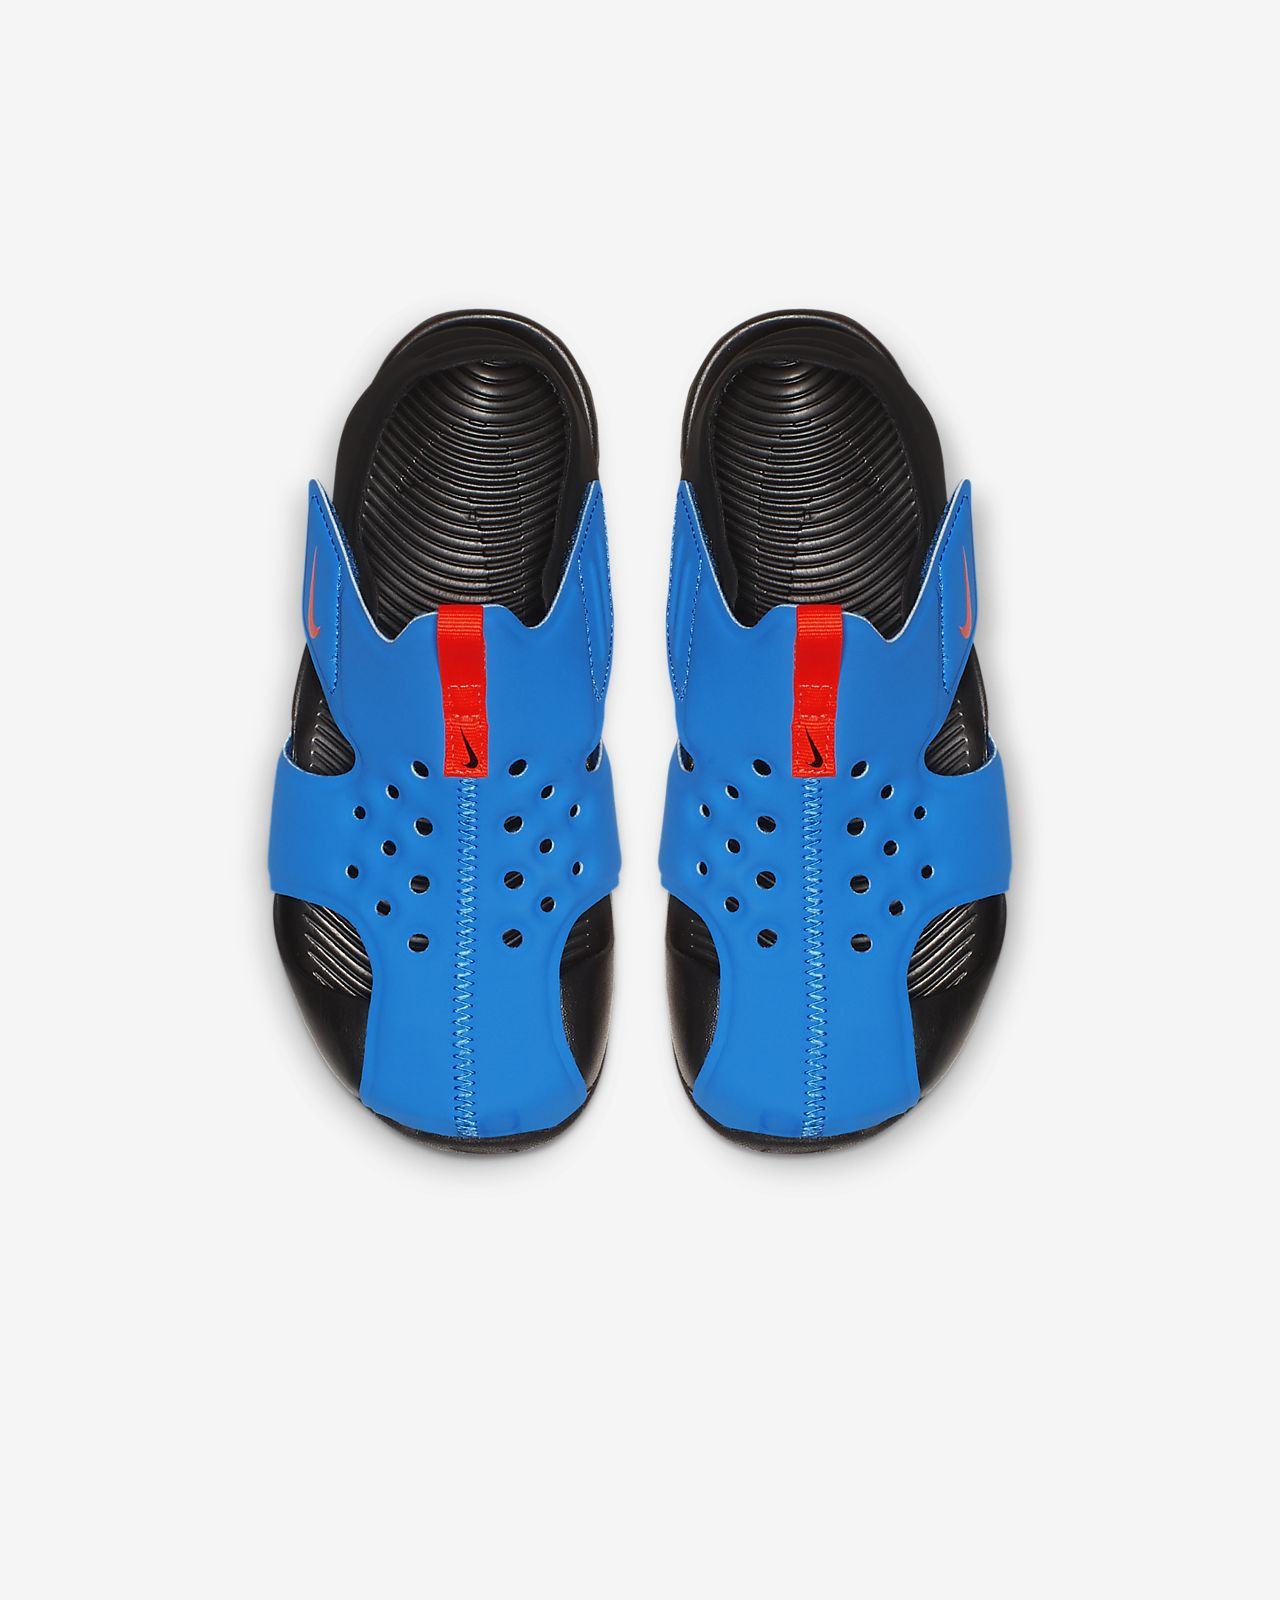 b9a7d37fd759 Nike Sunray Protect 2 Younger Kids  Sandal. Nike.com IN